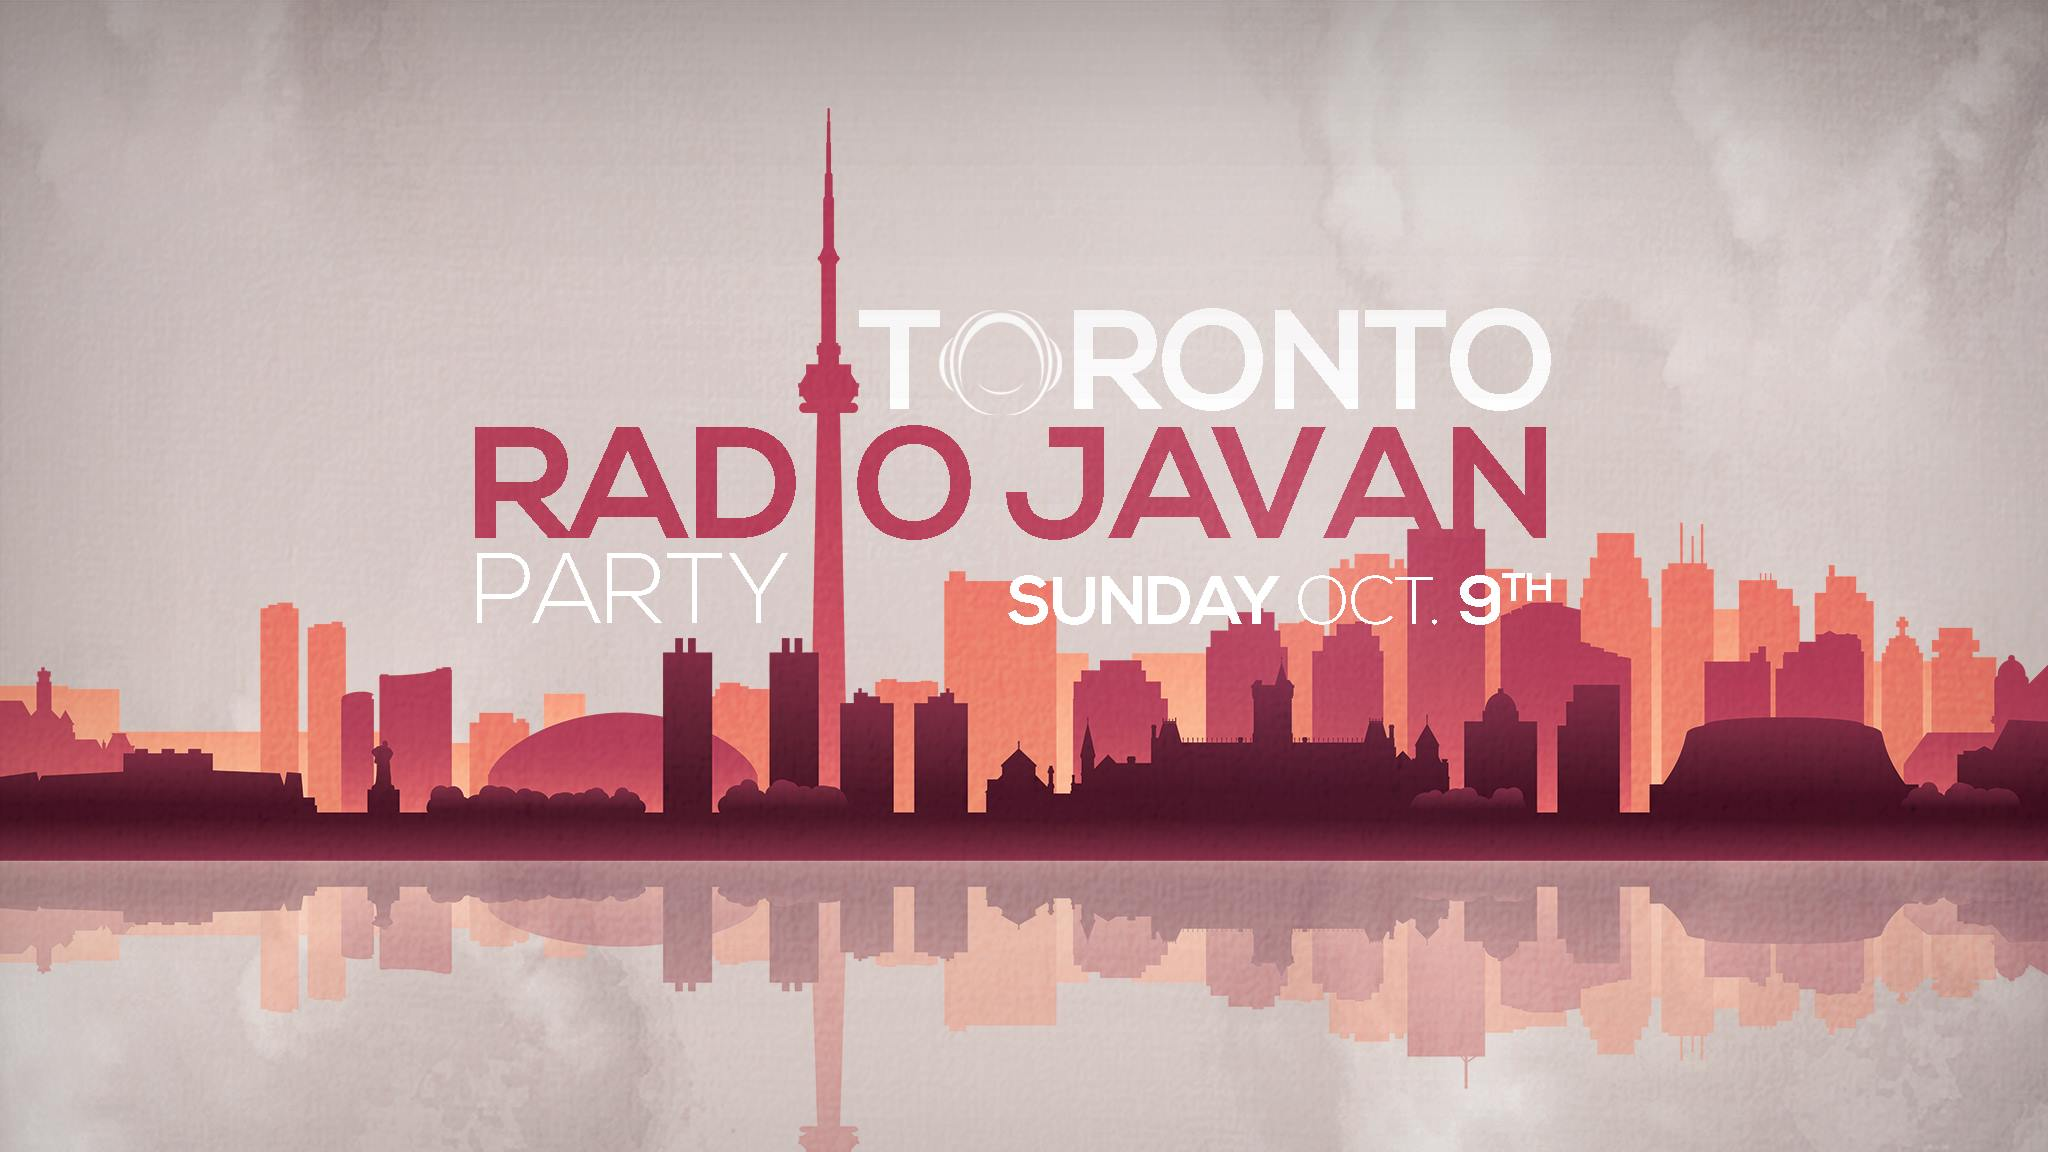 Radio Javan Party in Toronto 2 -